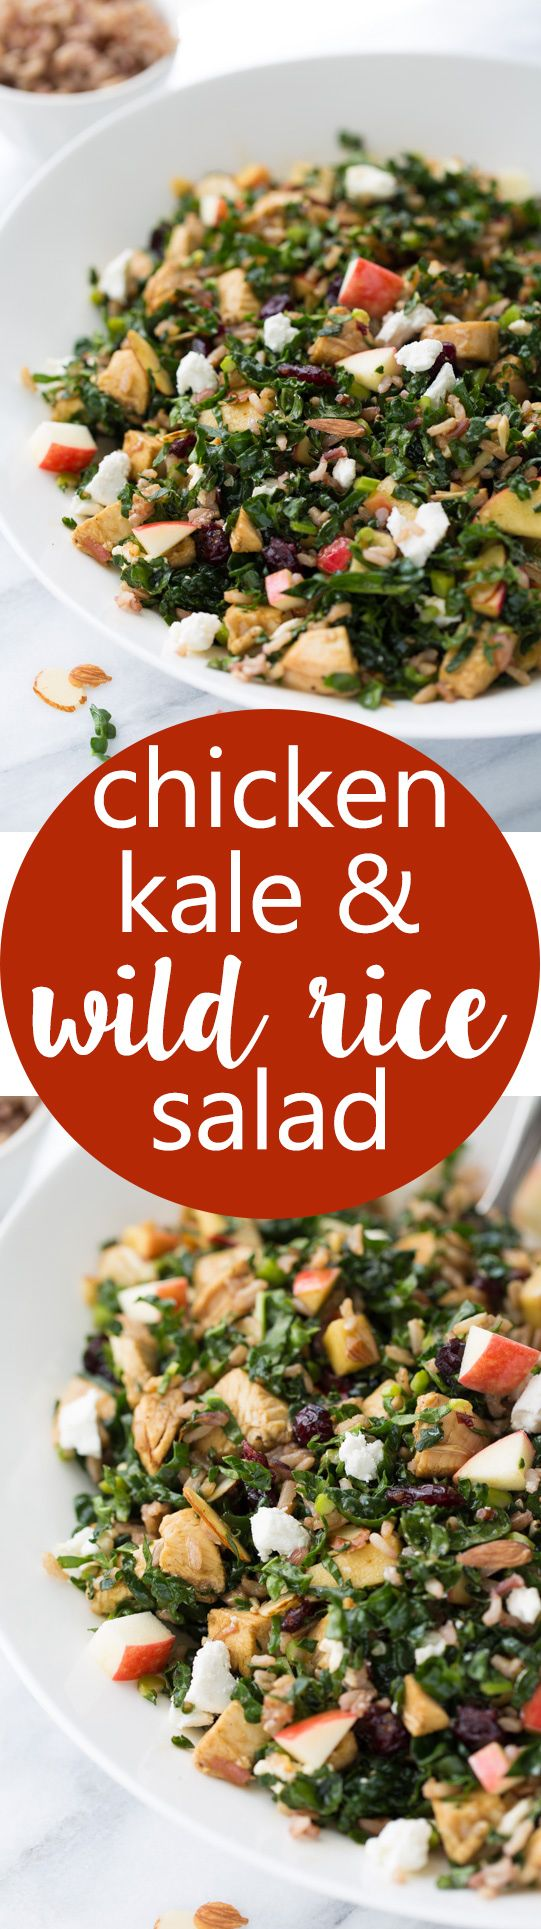 Chicken Kale & Wild Rice Salad! A healthy and delicious salad full of almonds, cranberries, apples and goat cheese. (Cubby's Copycat!)